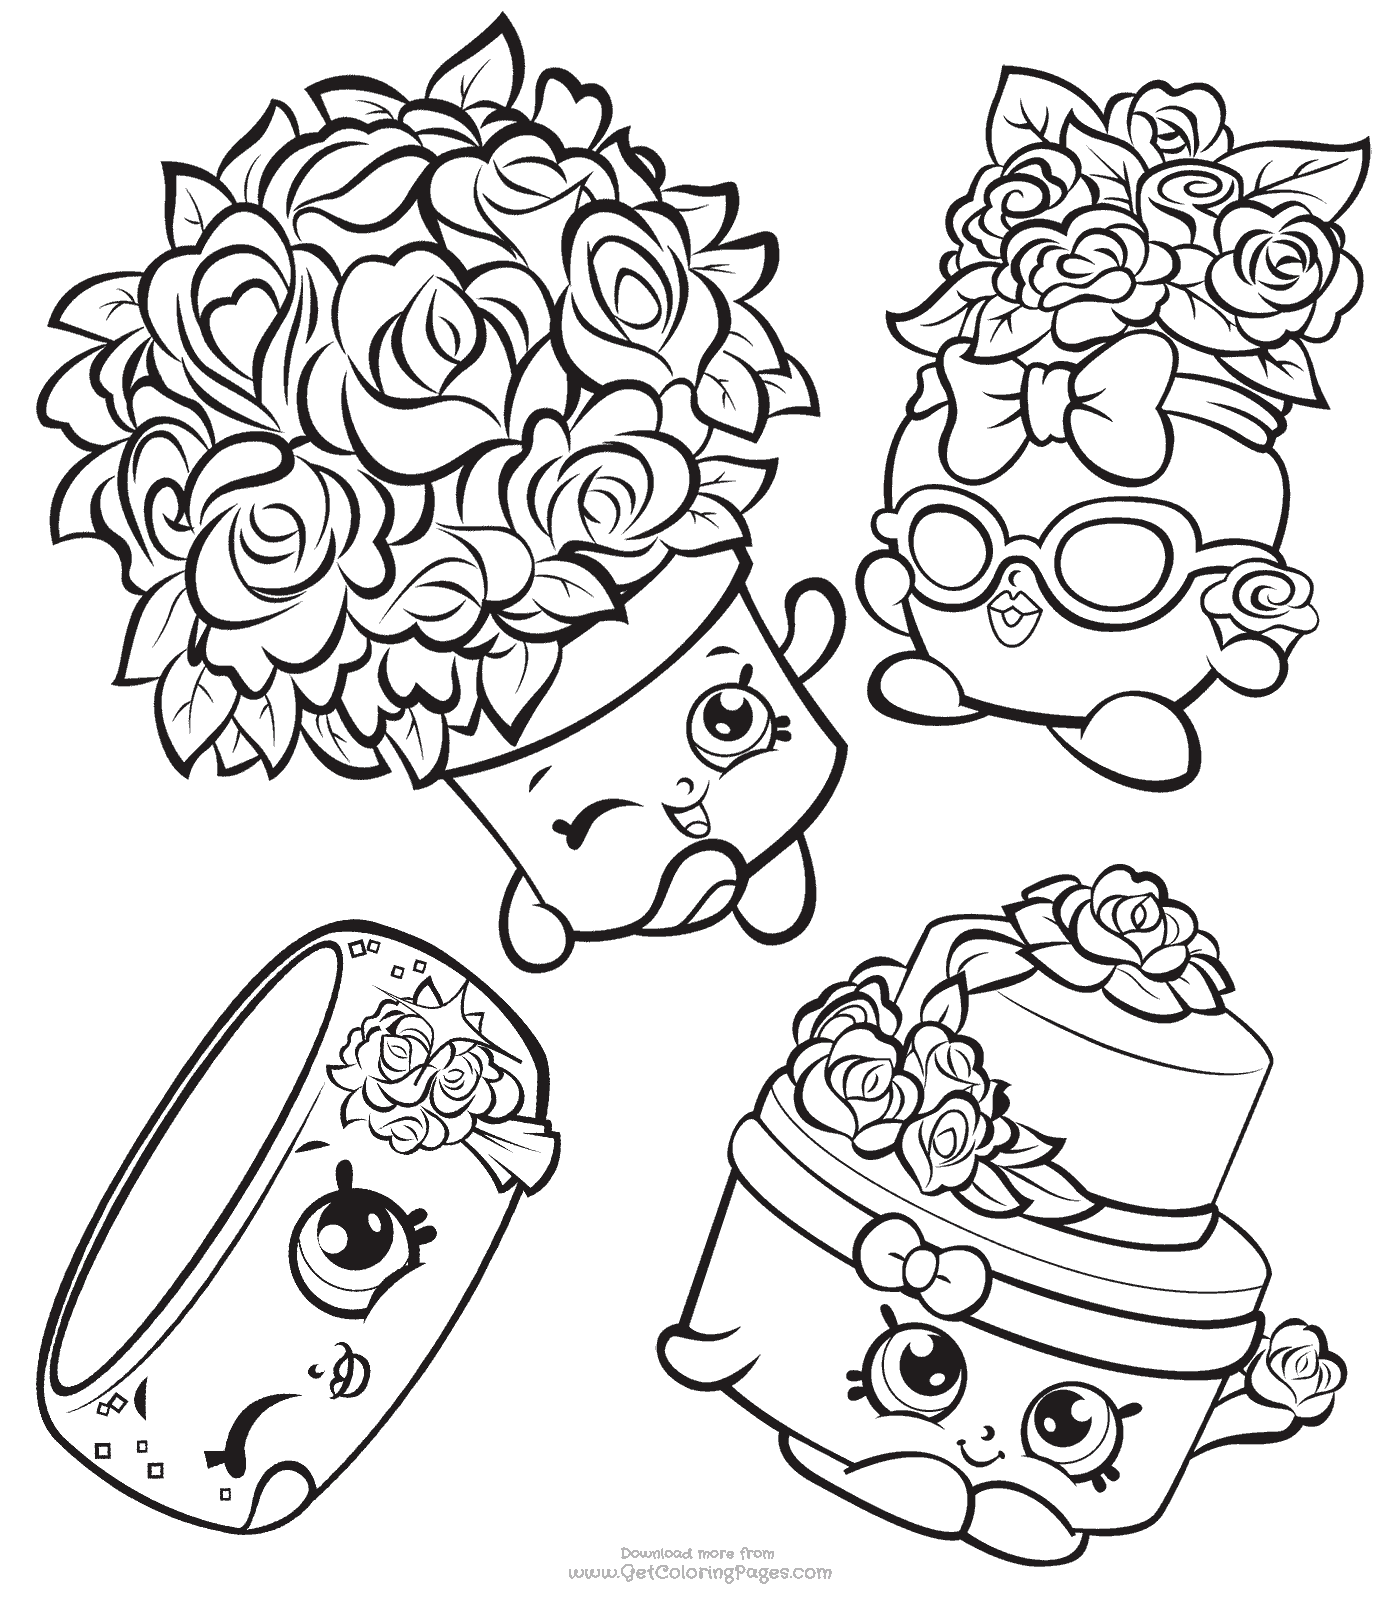 1400x1600 Wedding Shopkins Party Coloring Pages Shopkins To Color